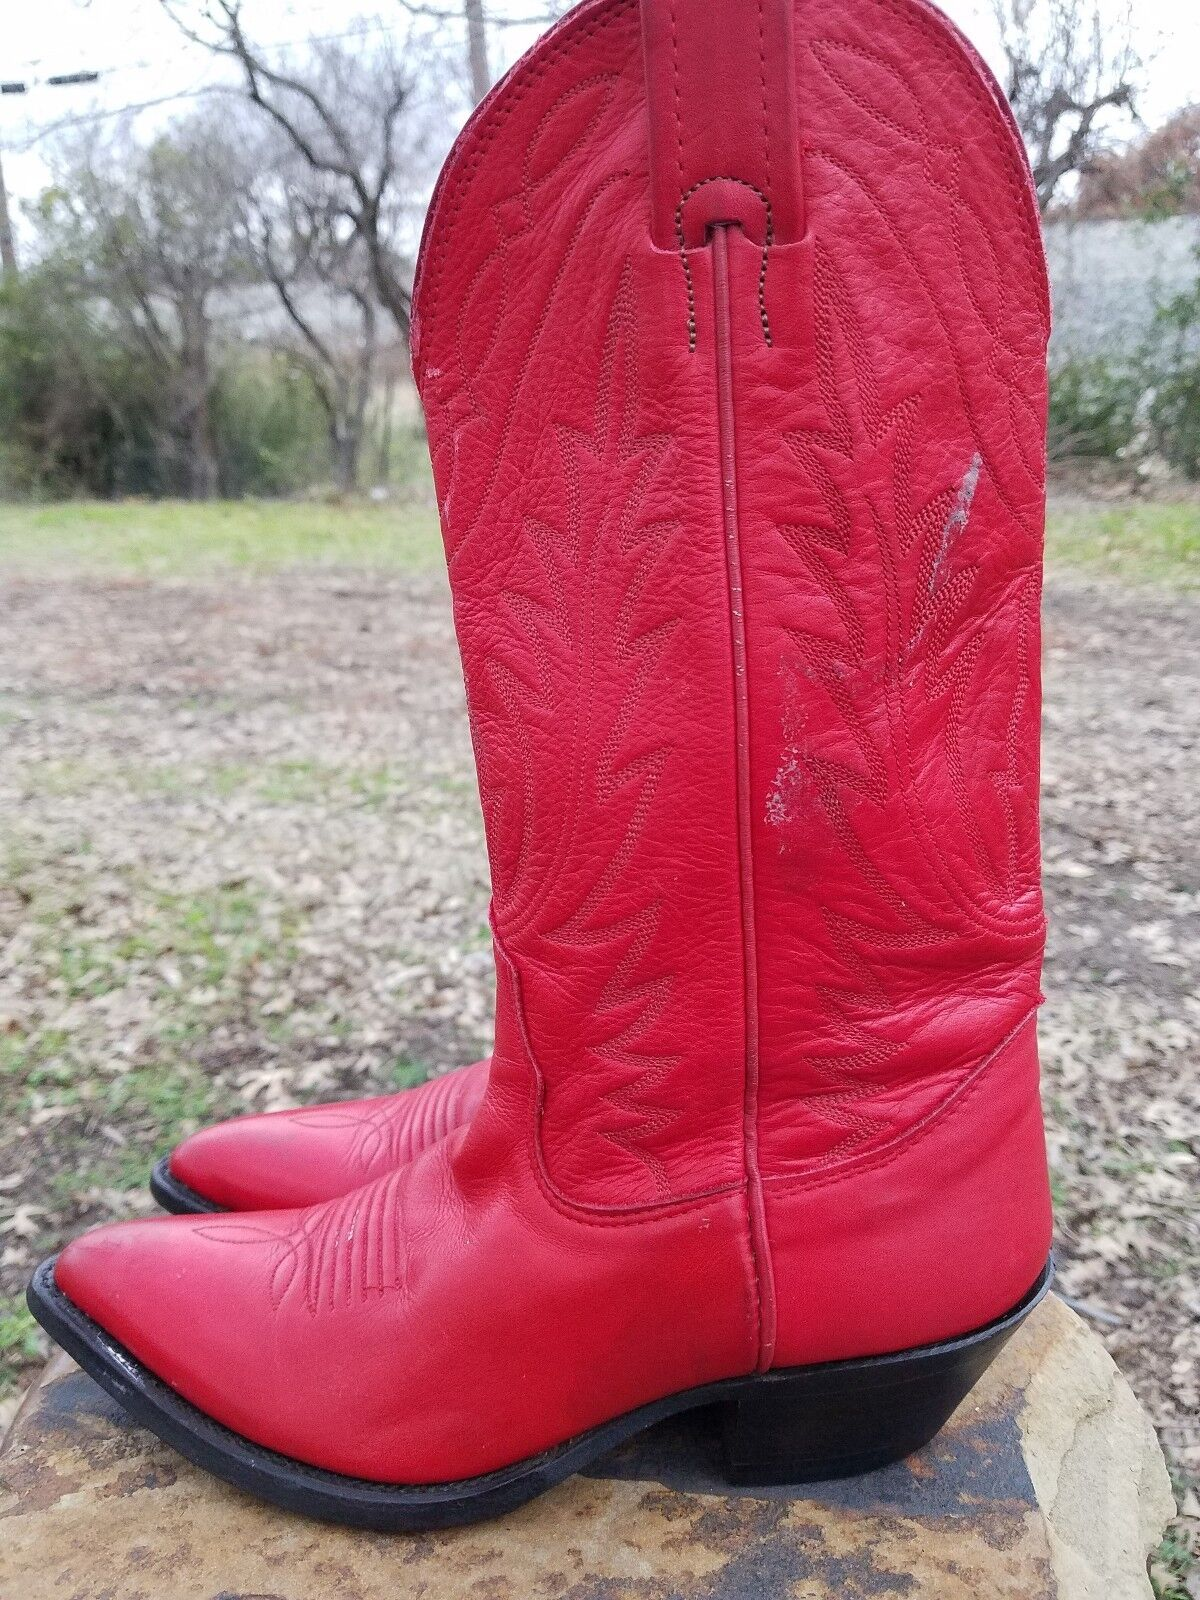 Nocona Red Cowboy Women's Boots Size 5 B Handcrafted In USA